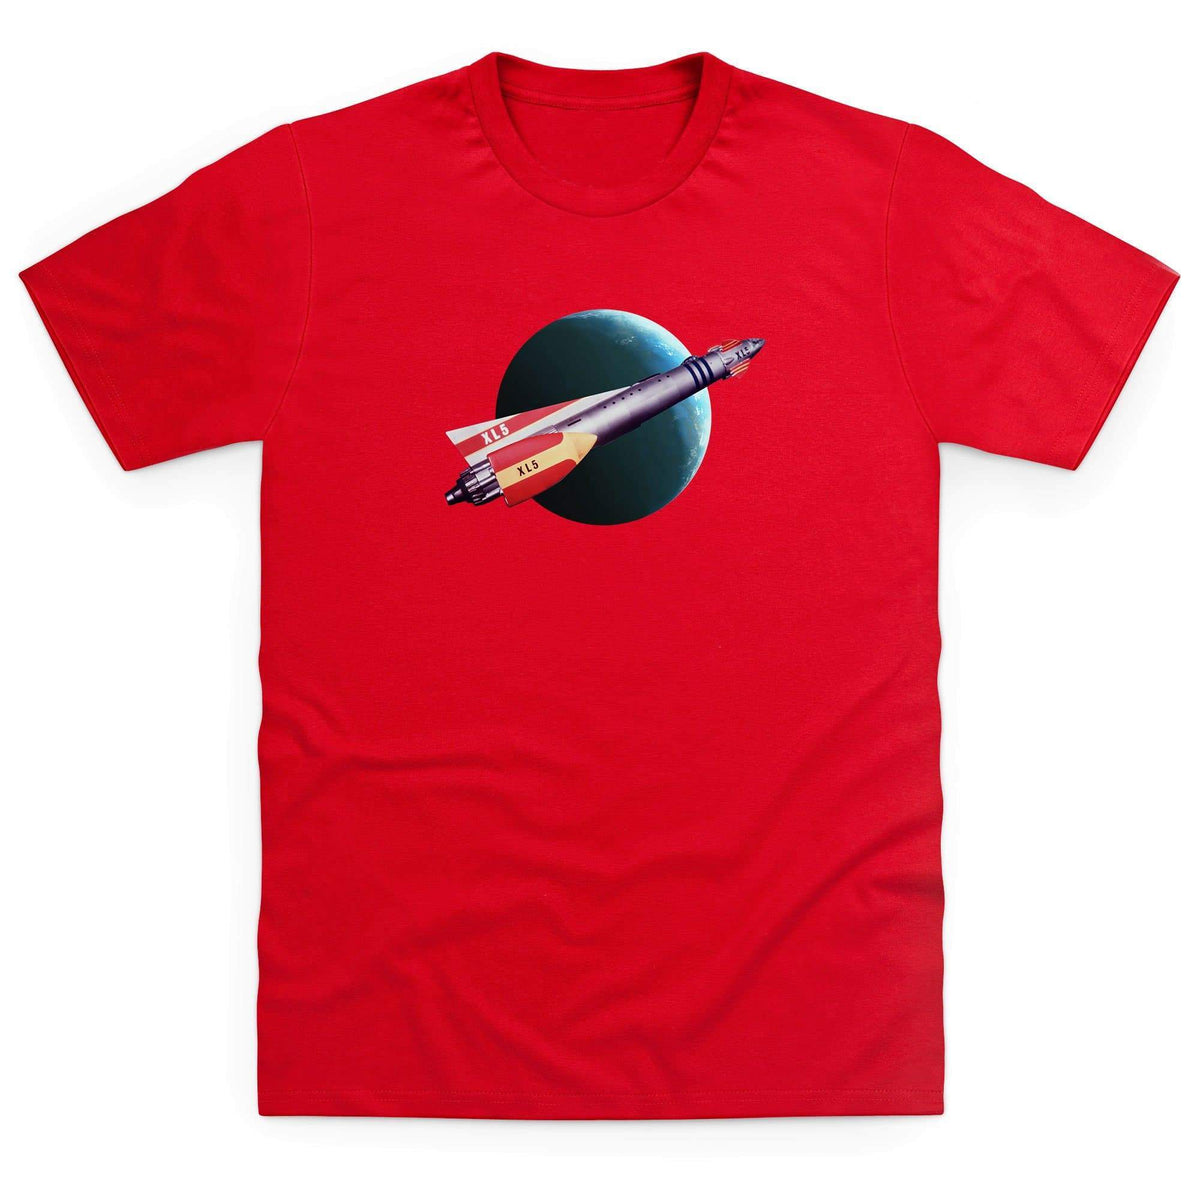 Fireball XL5 In Flight Men's T-Shirt [Official & Exclusive] - The Gerry Anderson Store